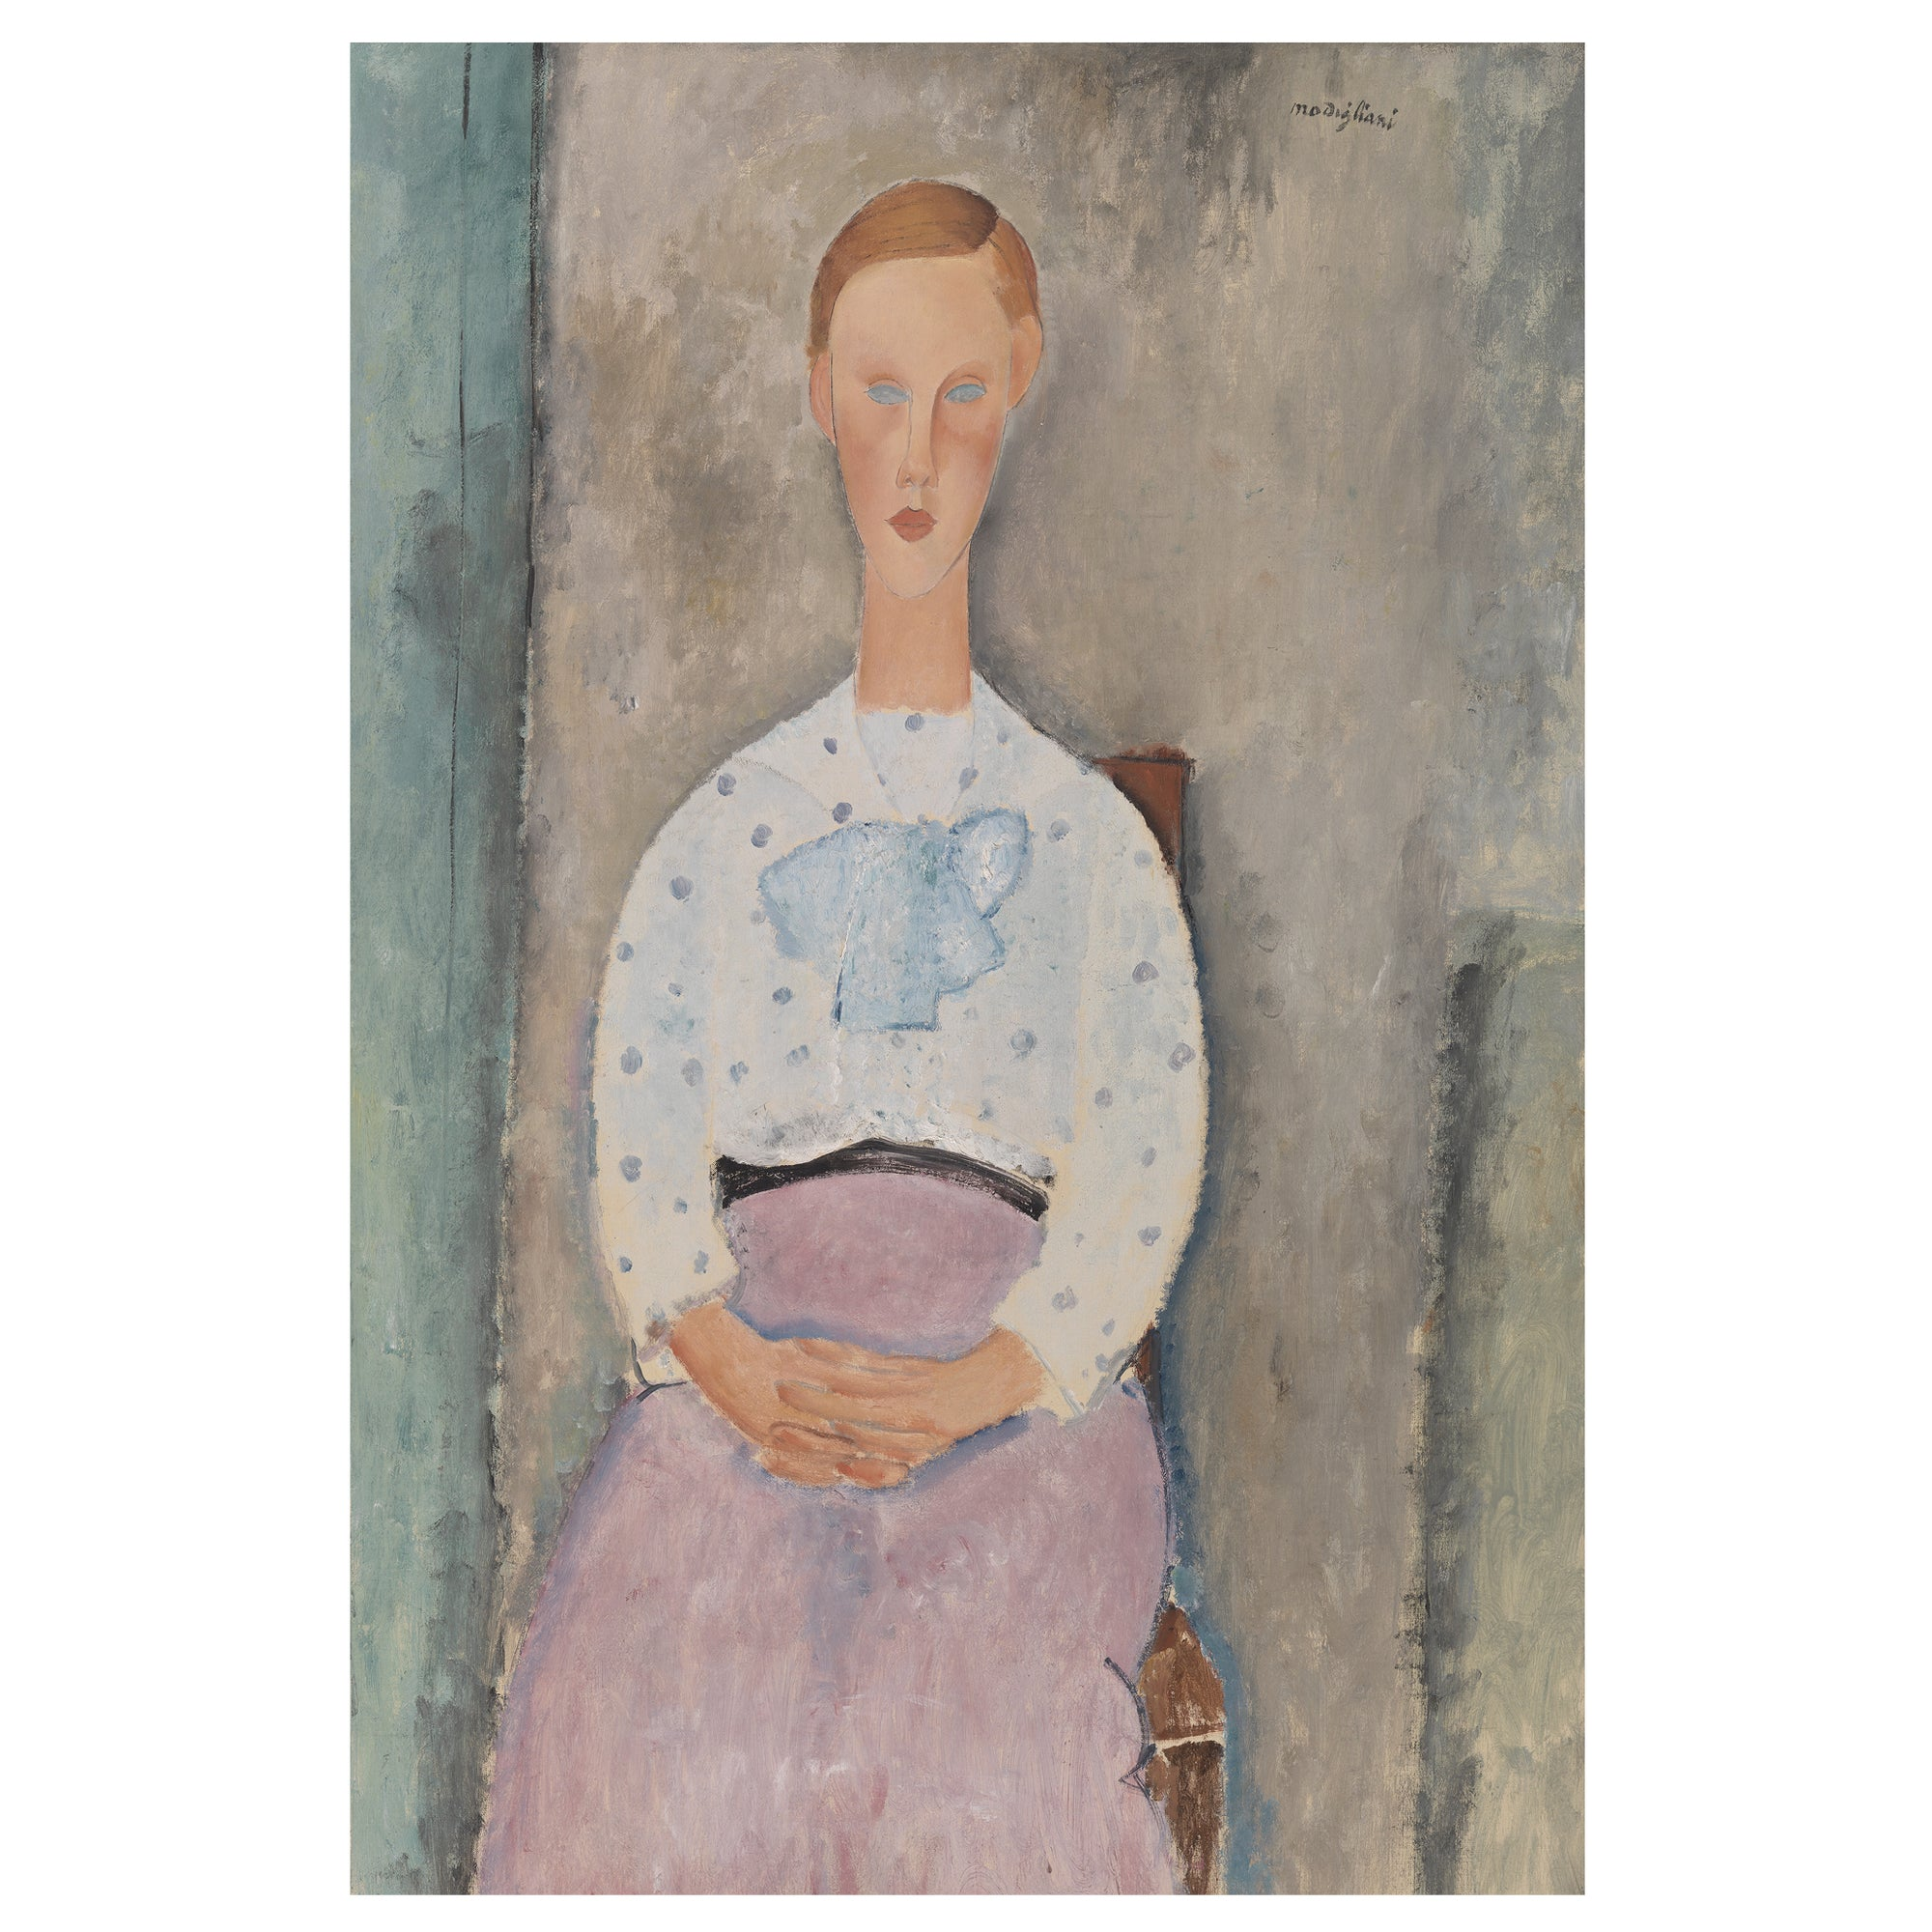 Amedeo Modigliani art print, girl pink skirt and polka dot blouse